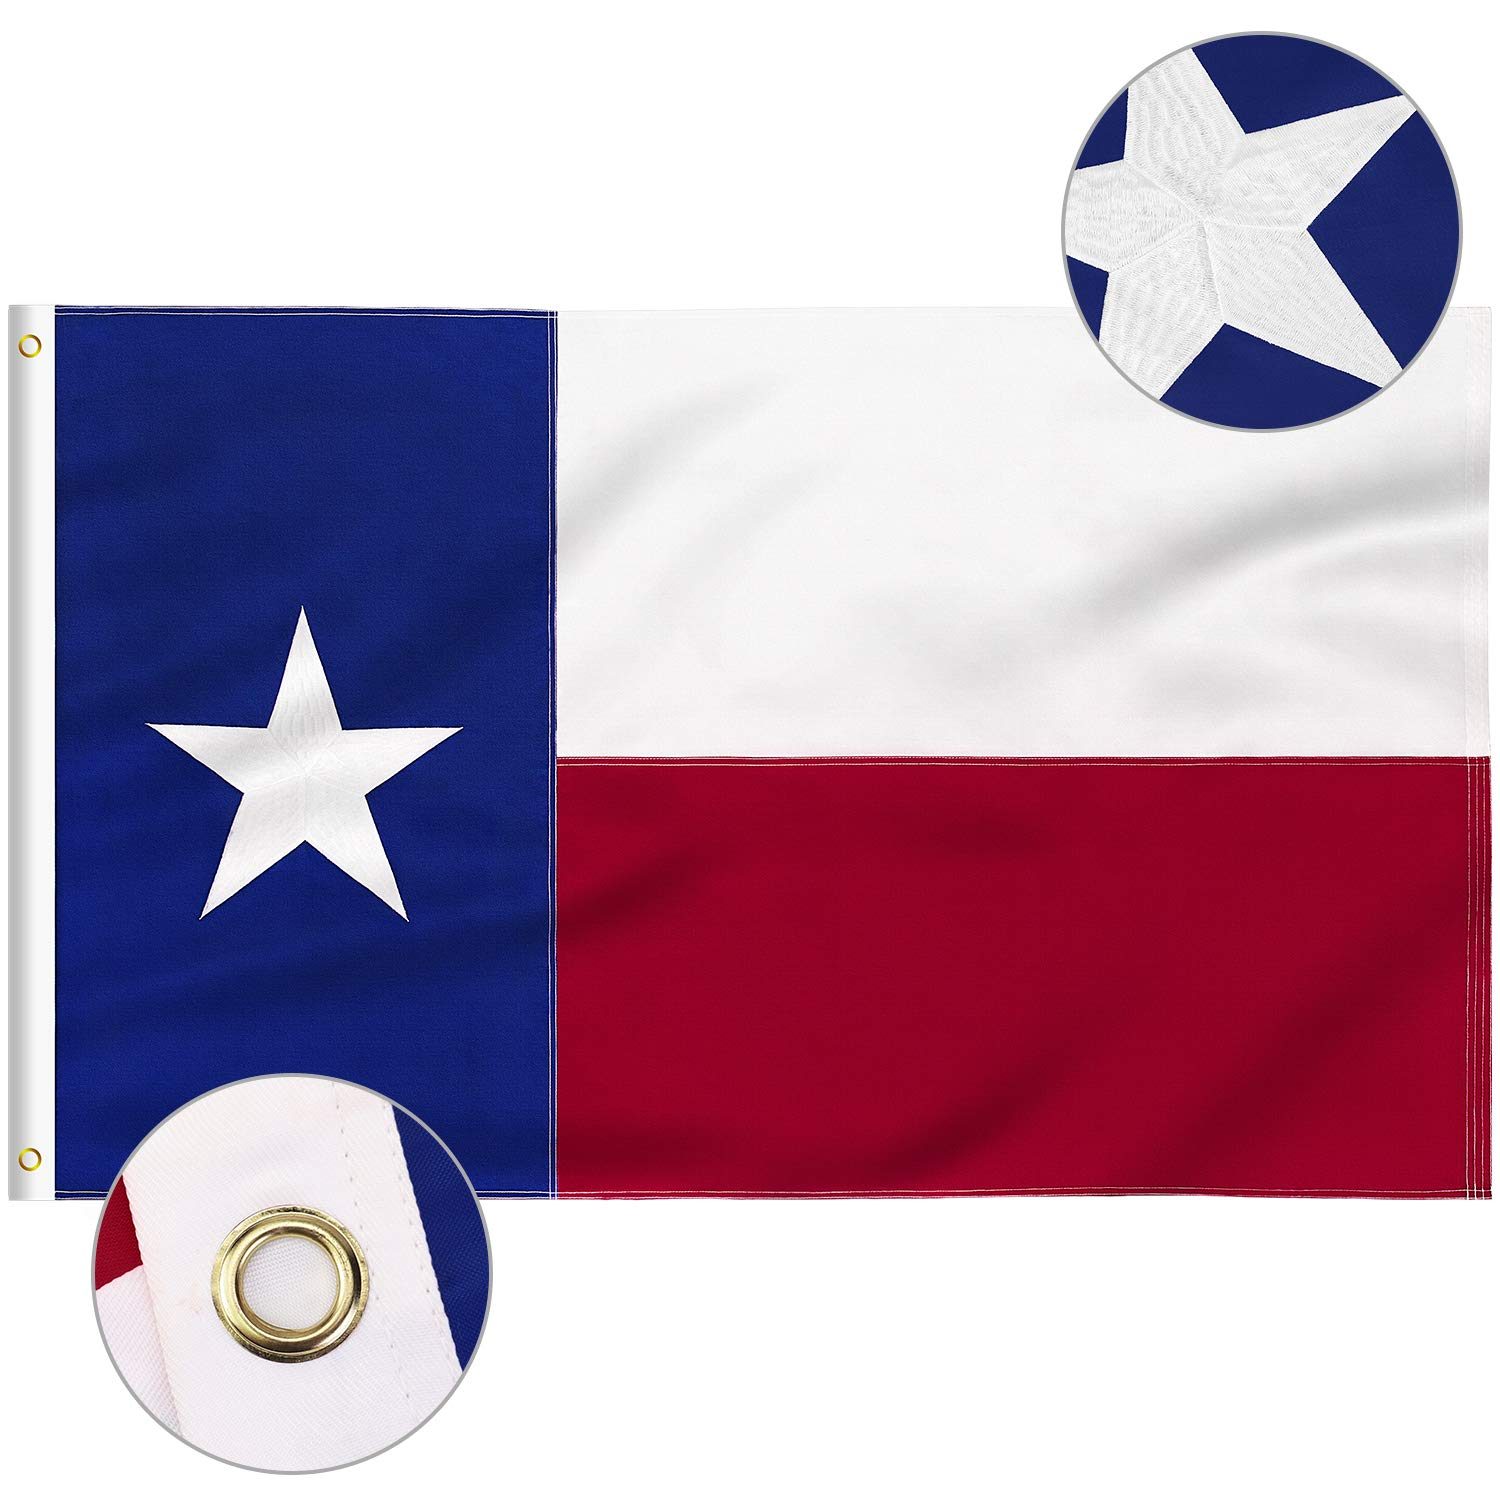 FLAGBURG Texas Flag 4x6 FT, TX Flags with Embroidered Star, Sewn Stripes (Not Print), Canvas Header & Brass Grommets, 100% High-Grade Outdoor Nylon for All-Weather Outdoor Display